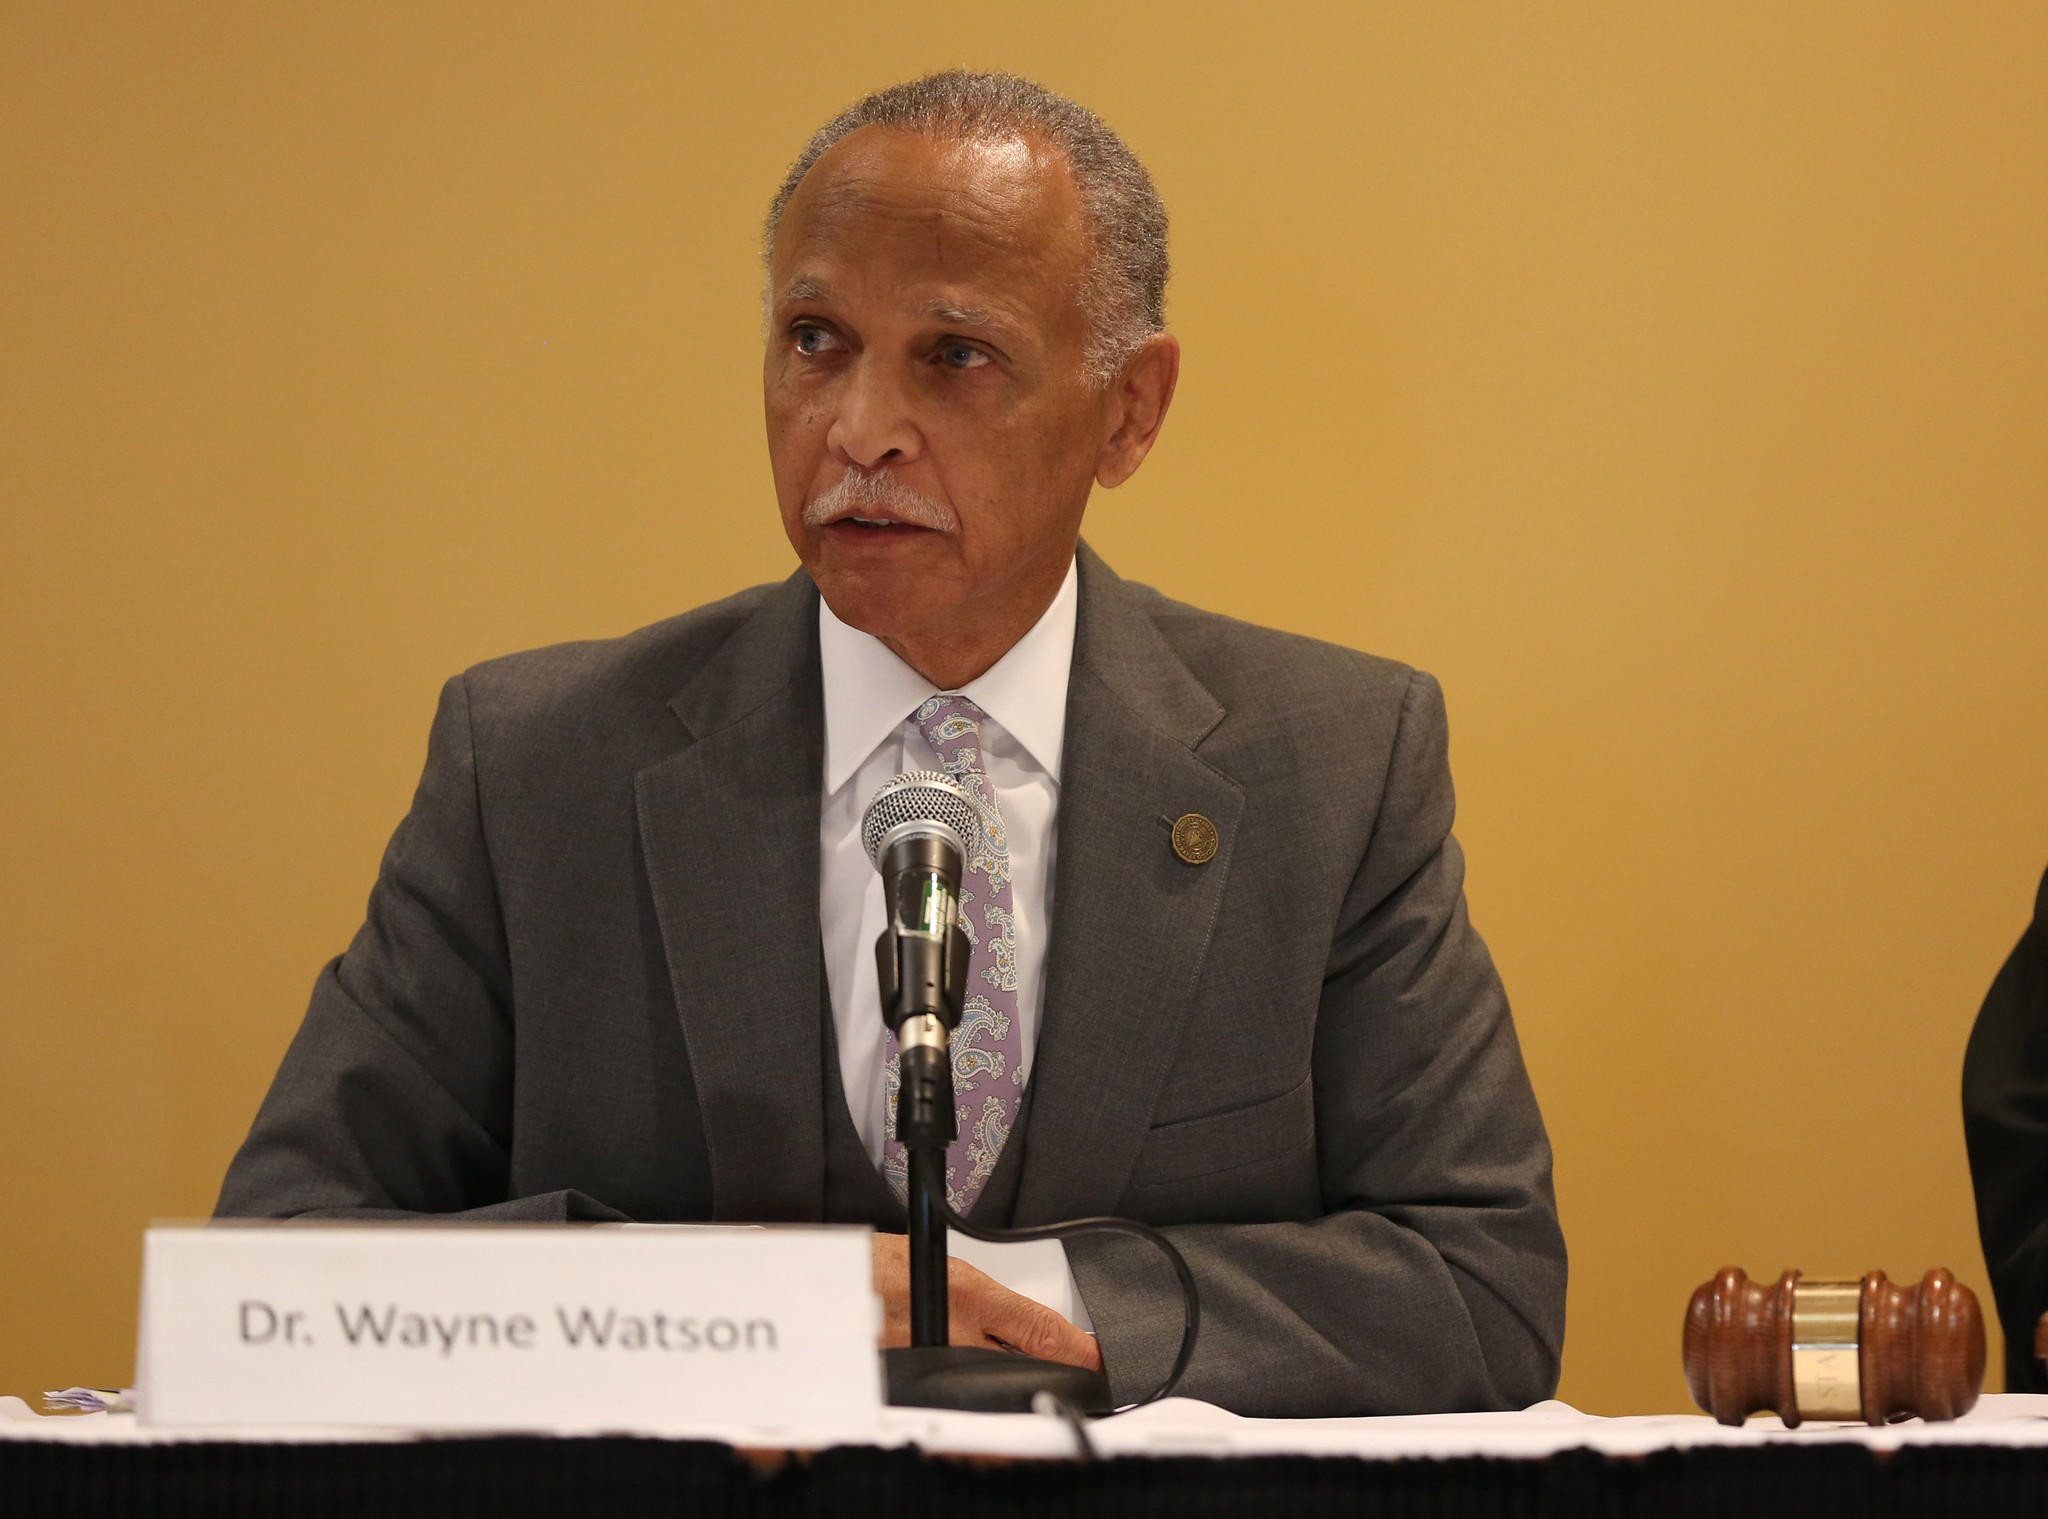 Dr. Wayne Watson, president of Chicago State University, addresses the public concerning his decrease salary as president, during a school board meeting Friday.